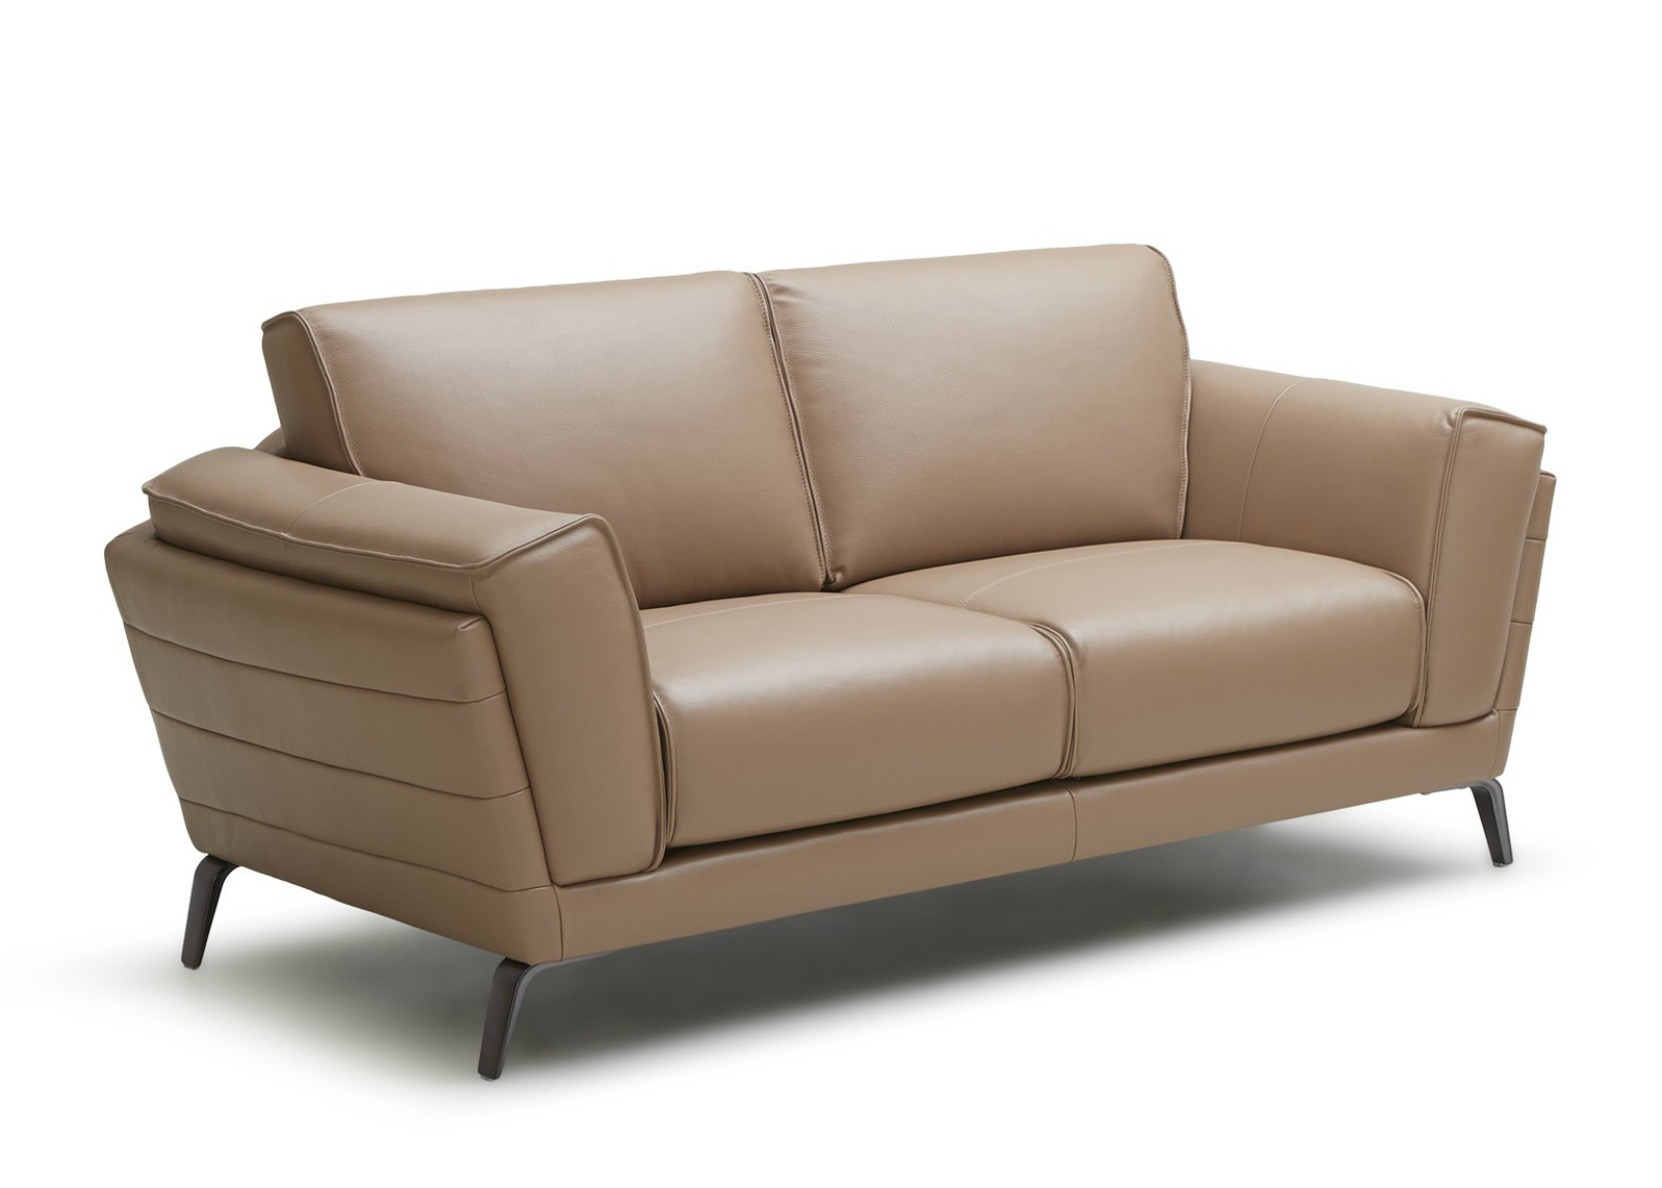 pink sofa bed for sale signature design by ashley tallow earth ivy in dusty leather not just brown